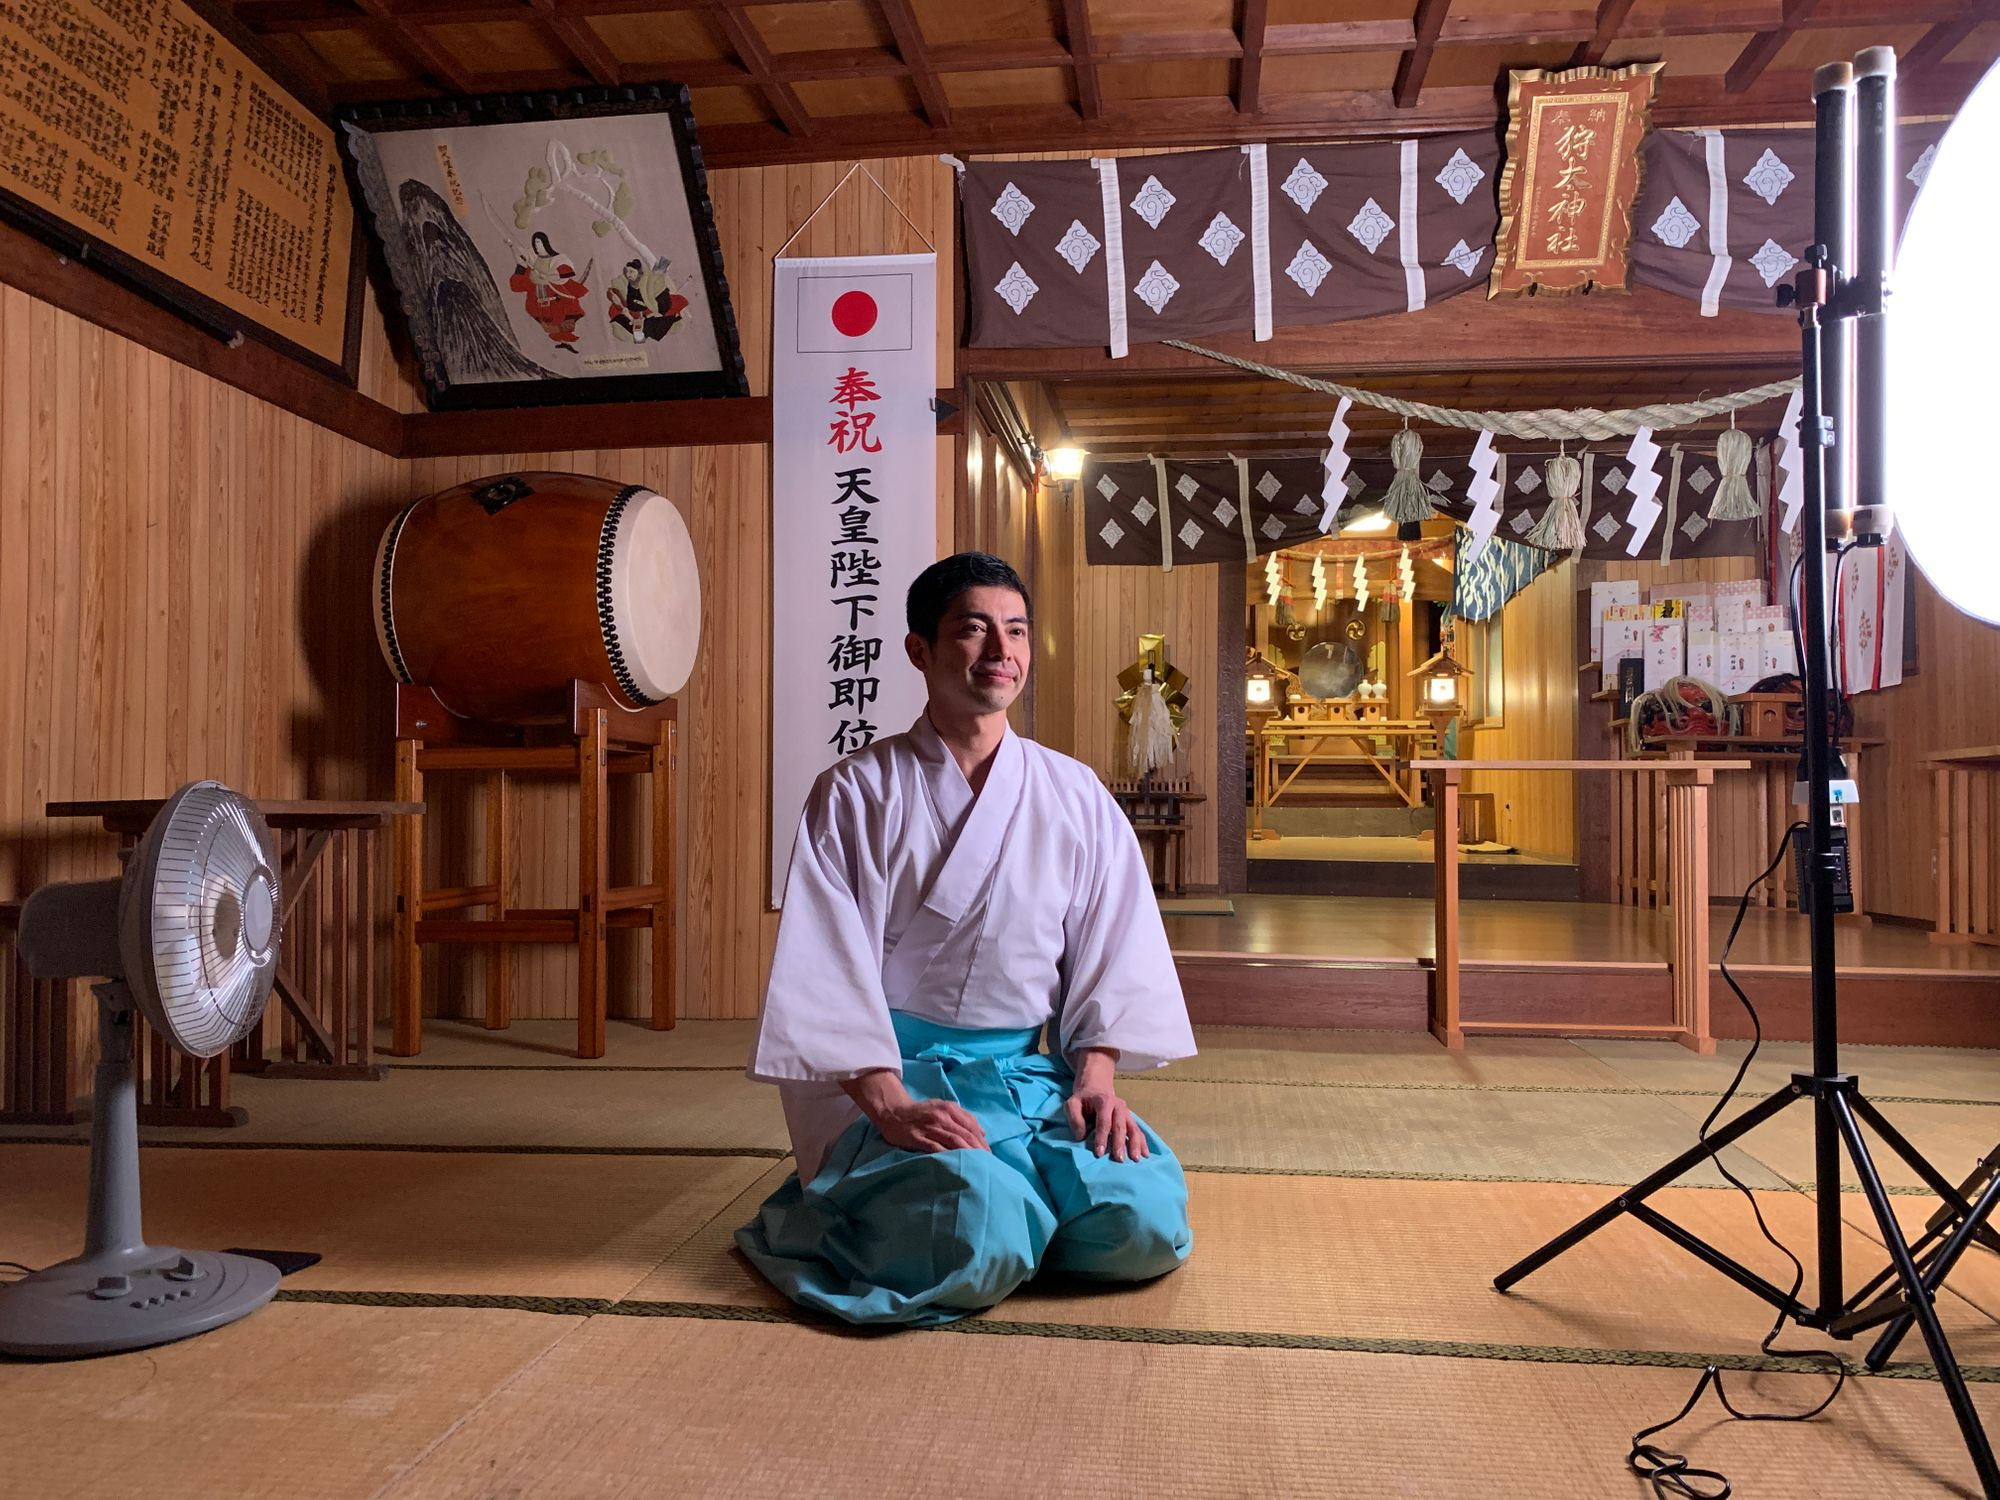 Meet The Male Host-Turned-Shinto Priest On A Mission To Spread Japanese Culture